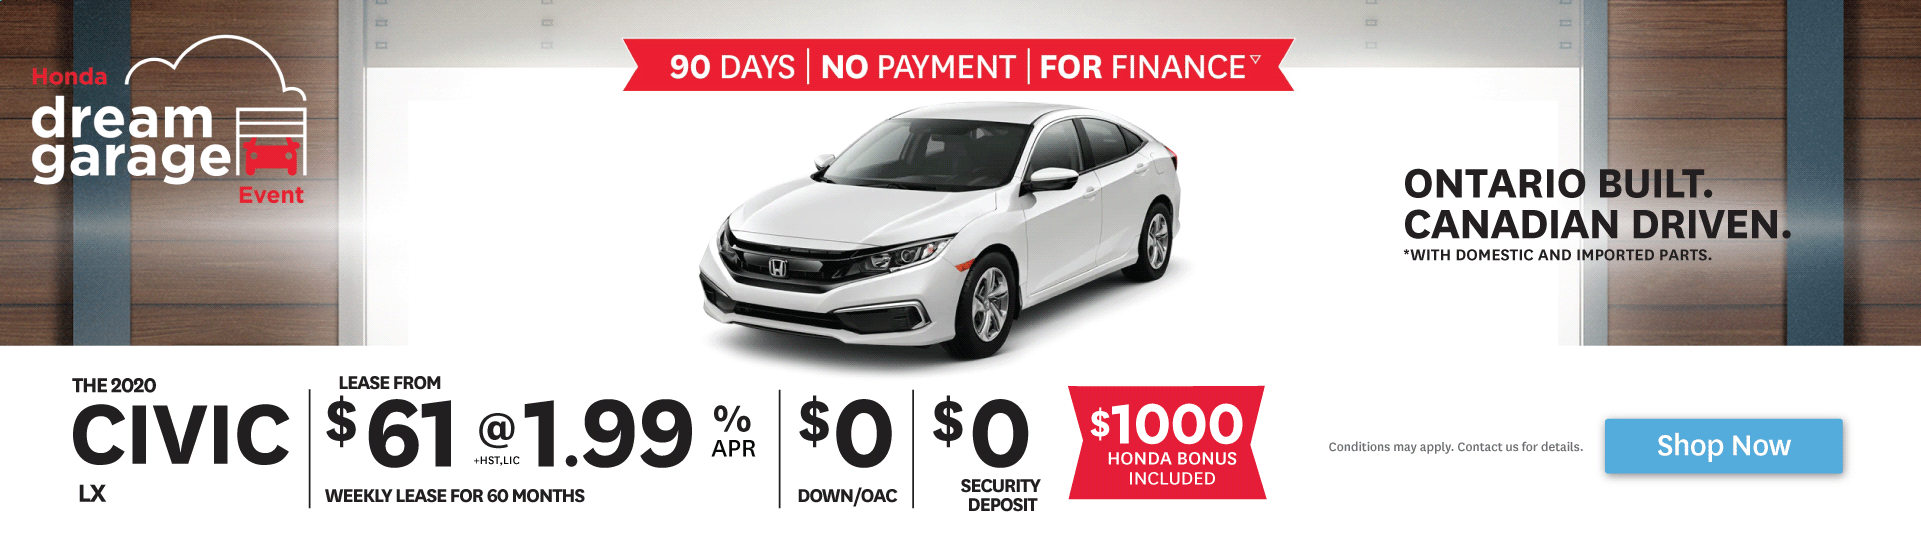 2020 Civic - 90 Days - No Payment - For Finance